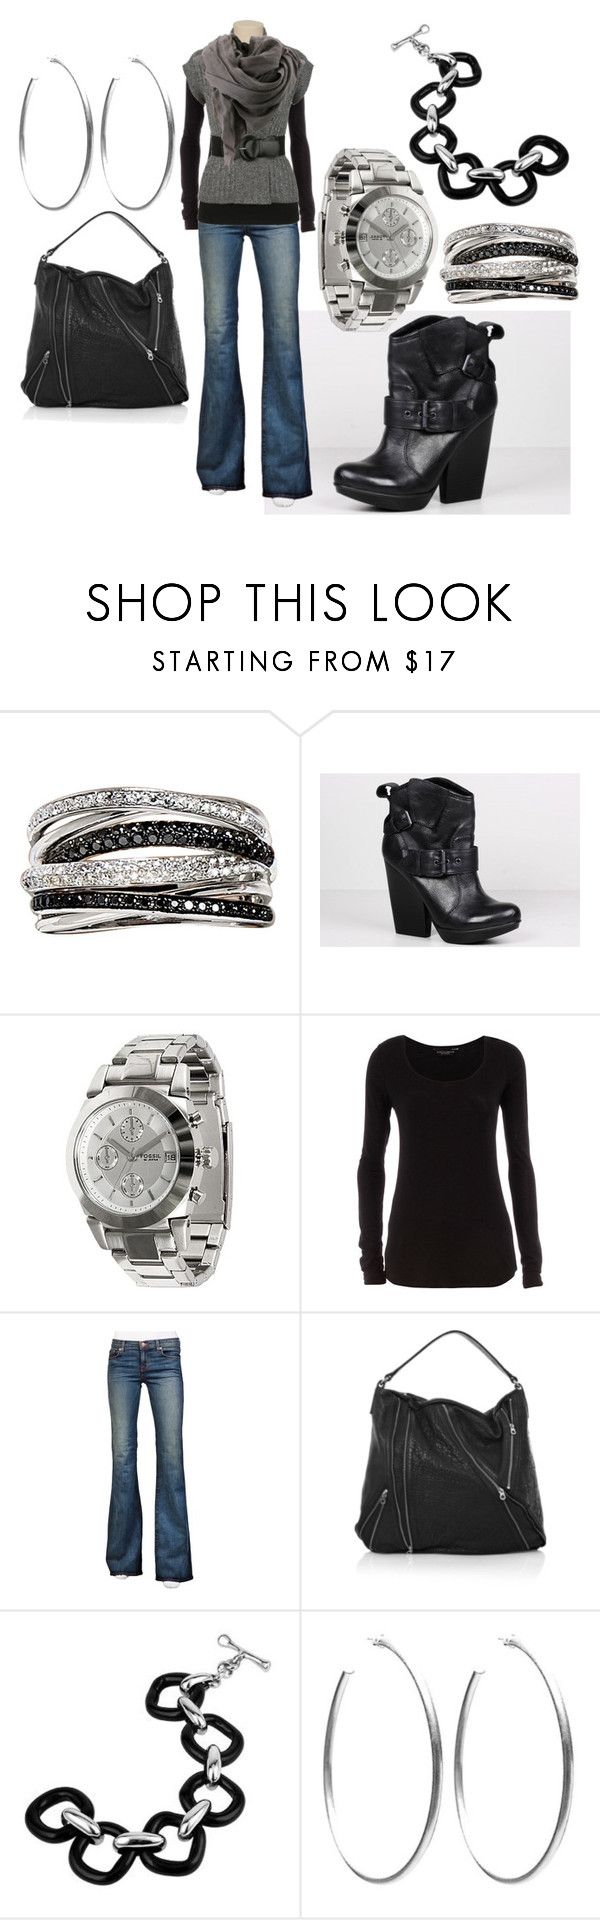 """""""Shopping Day"""" by jnifr ❤ liked on Polyvore featuring Effy Jewelry, Dolce Vita, FOSSIL, Dorothy Perkins, J Brand, maurices, Marc by Marc Jacobs, Bruuns Bazaar, Masini Gioielli and Sheila Fajl"""